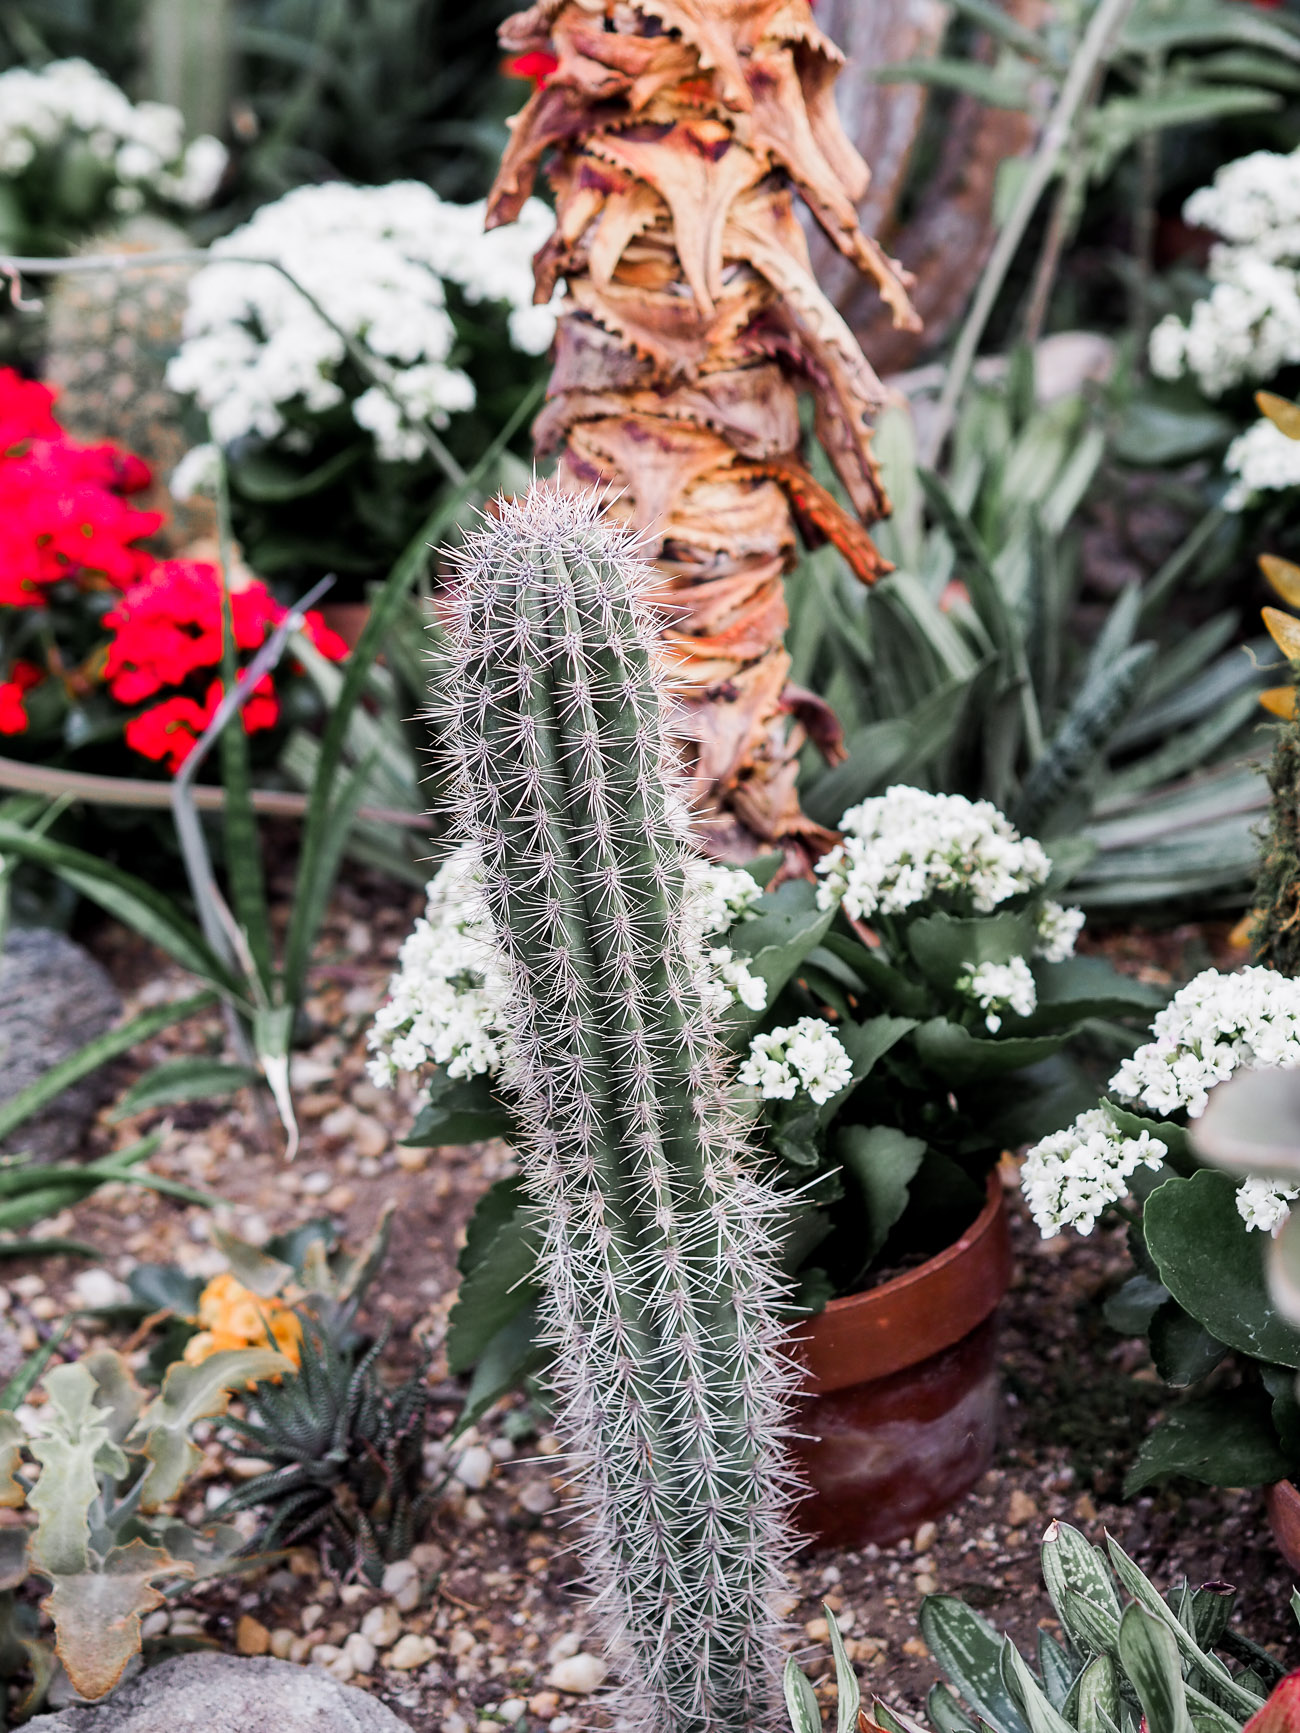 A cactus on display at Allan Gardens